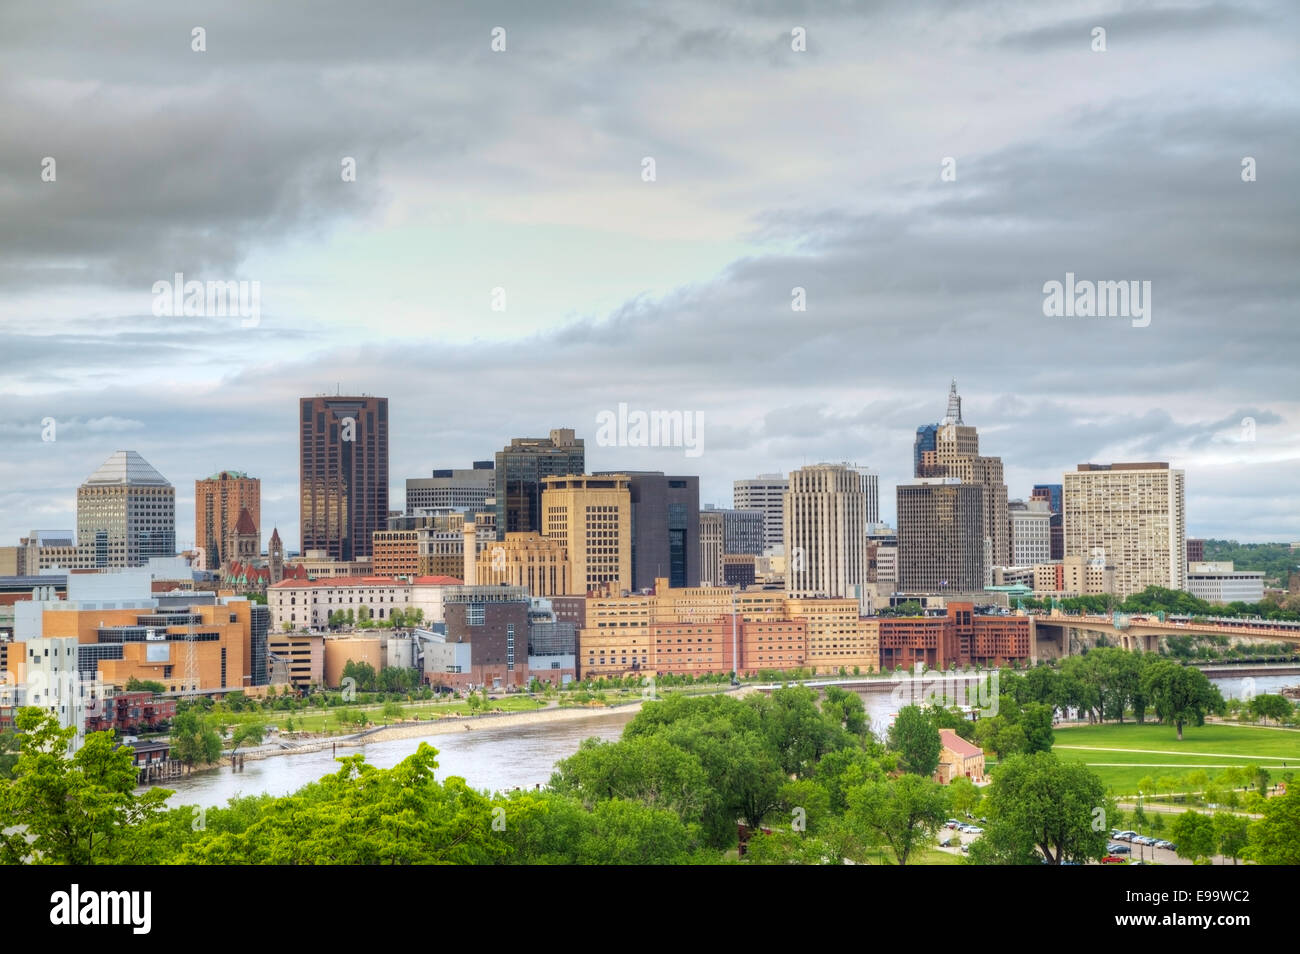 Downtown St. Paul, MN - Stock Image